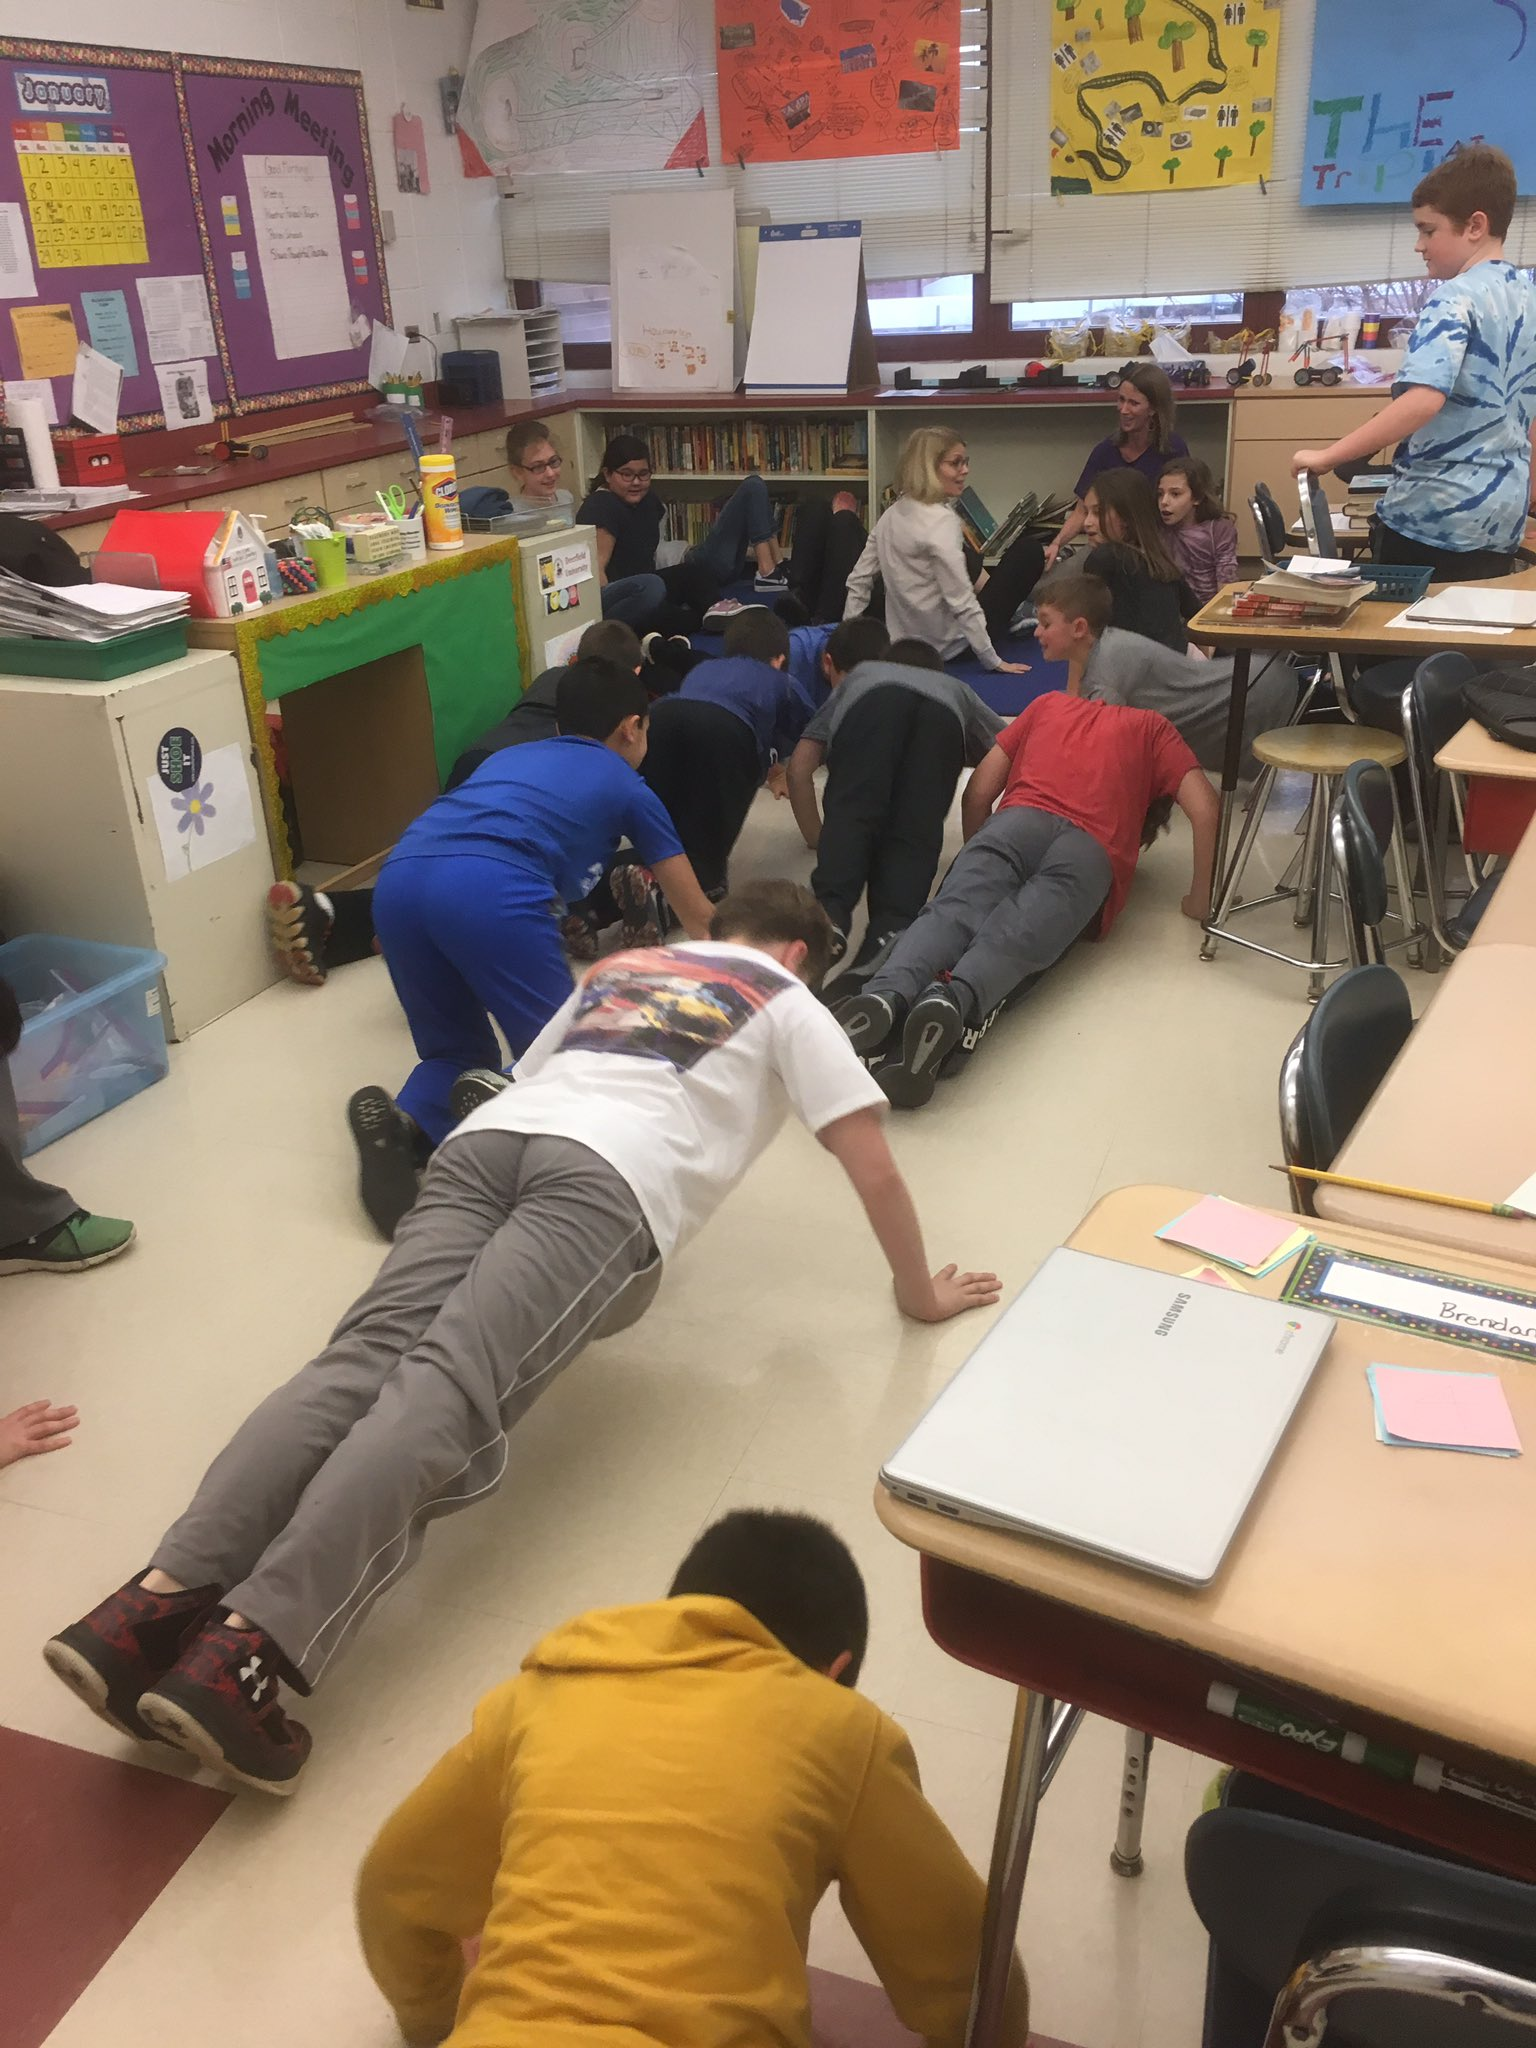 Indoor recess got you down? How about some exercise? Go 5th graders! #sp109 #engage109 WTG @KeidanFaith @Kkramer52 https://t.co/Vn8HcUNlII